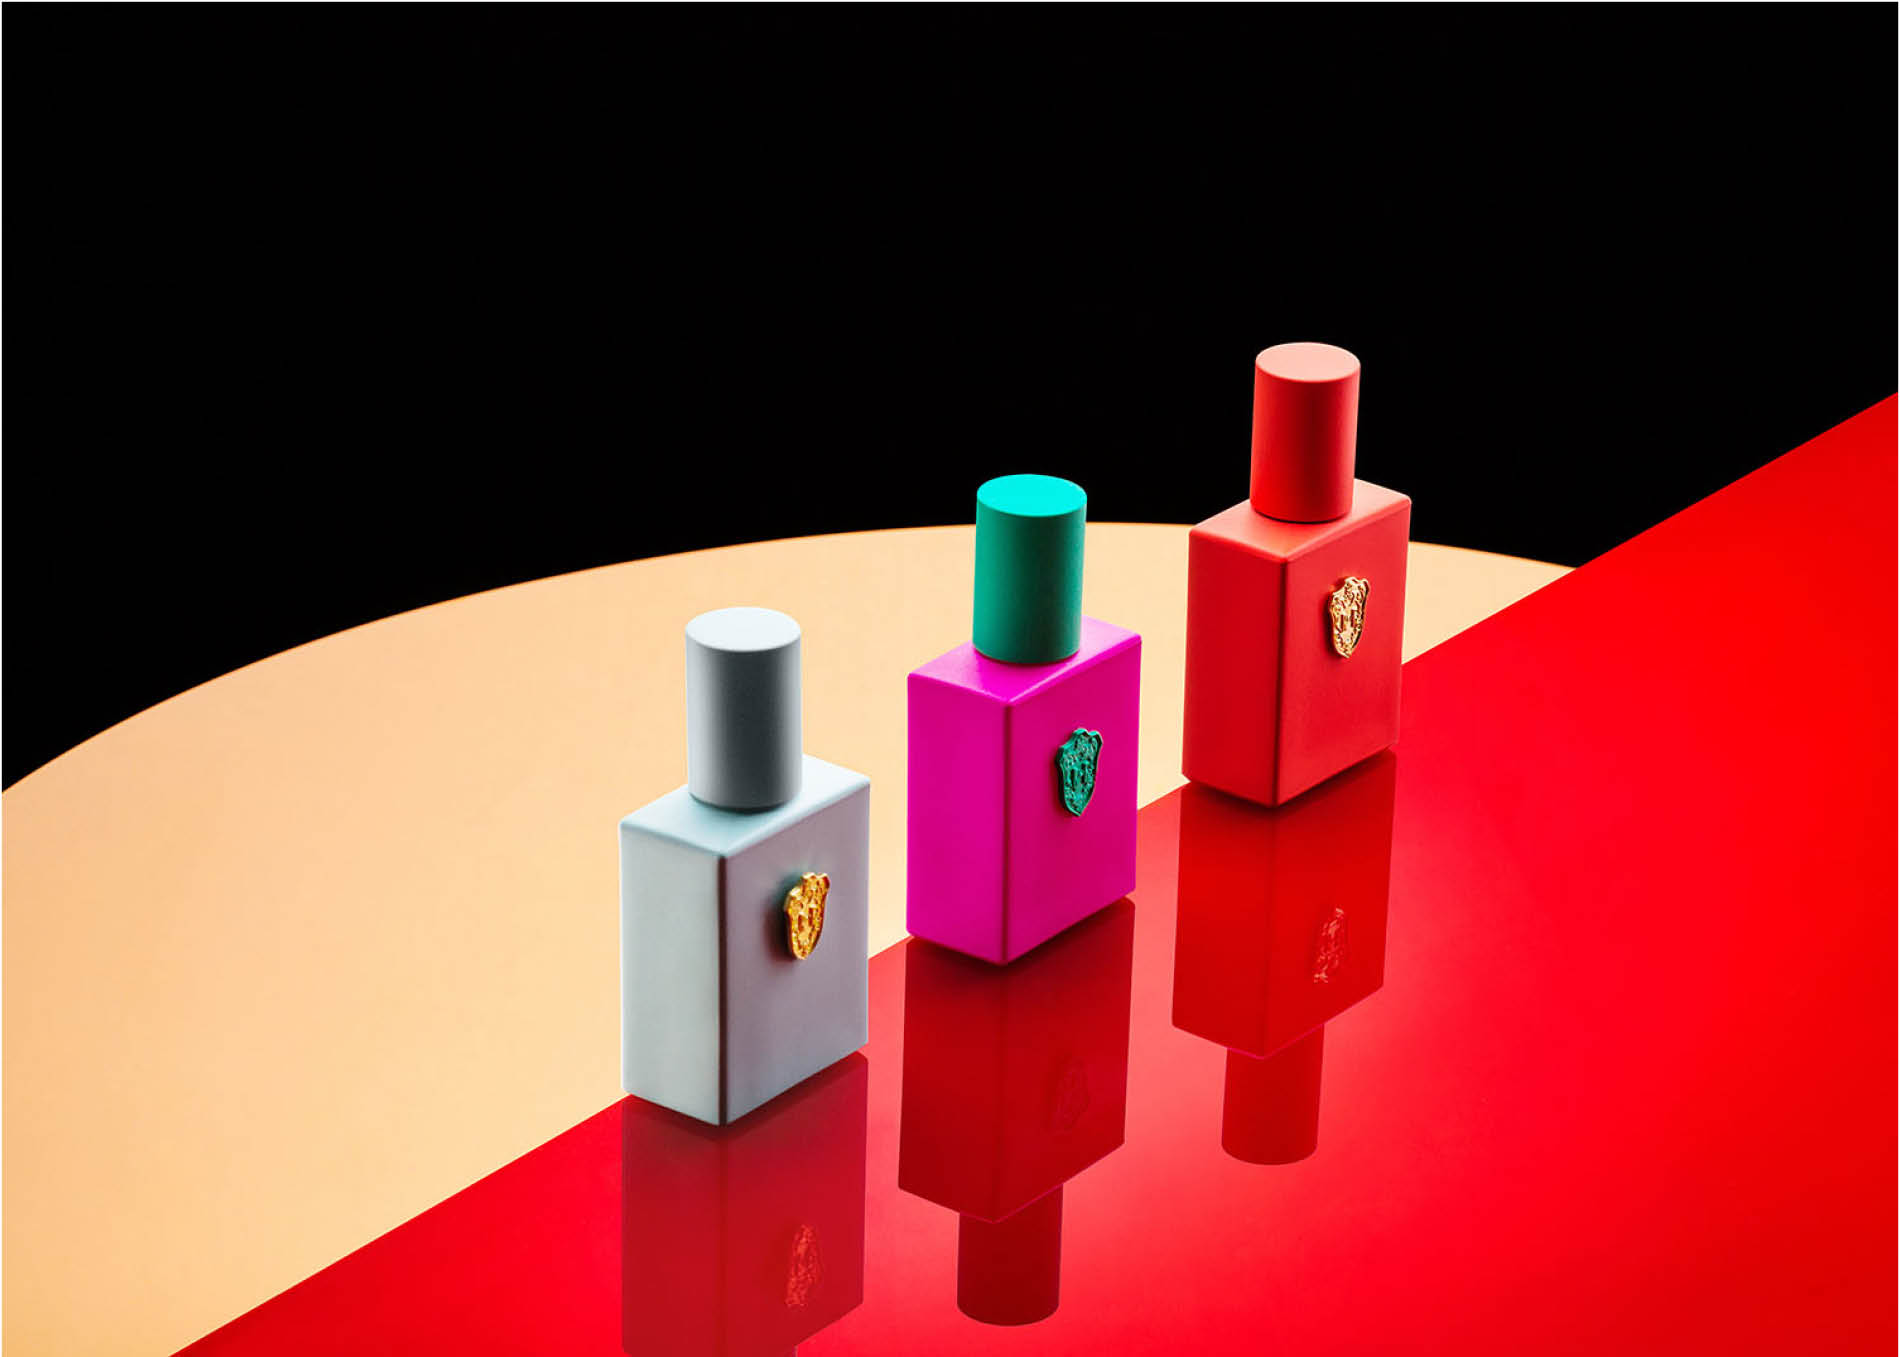 Photoshoot for Regime des Fleurs perfumes with creative direction by DTE Studio